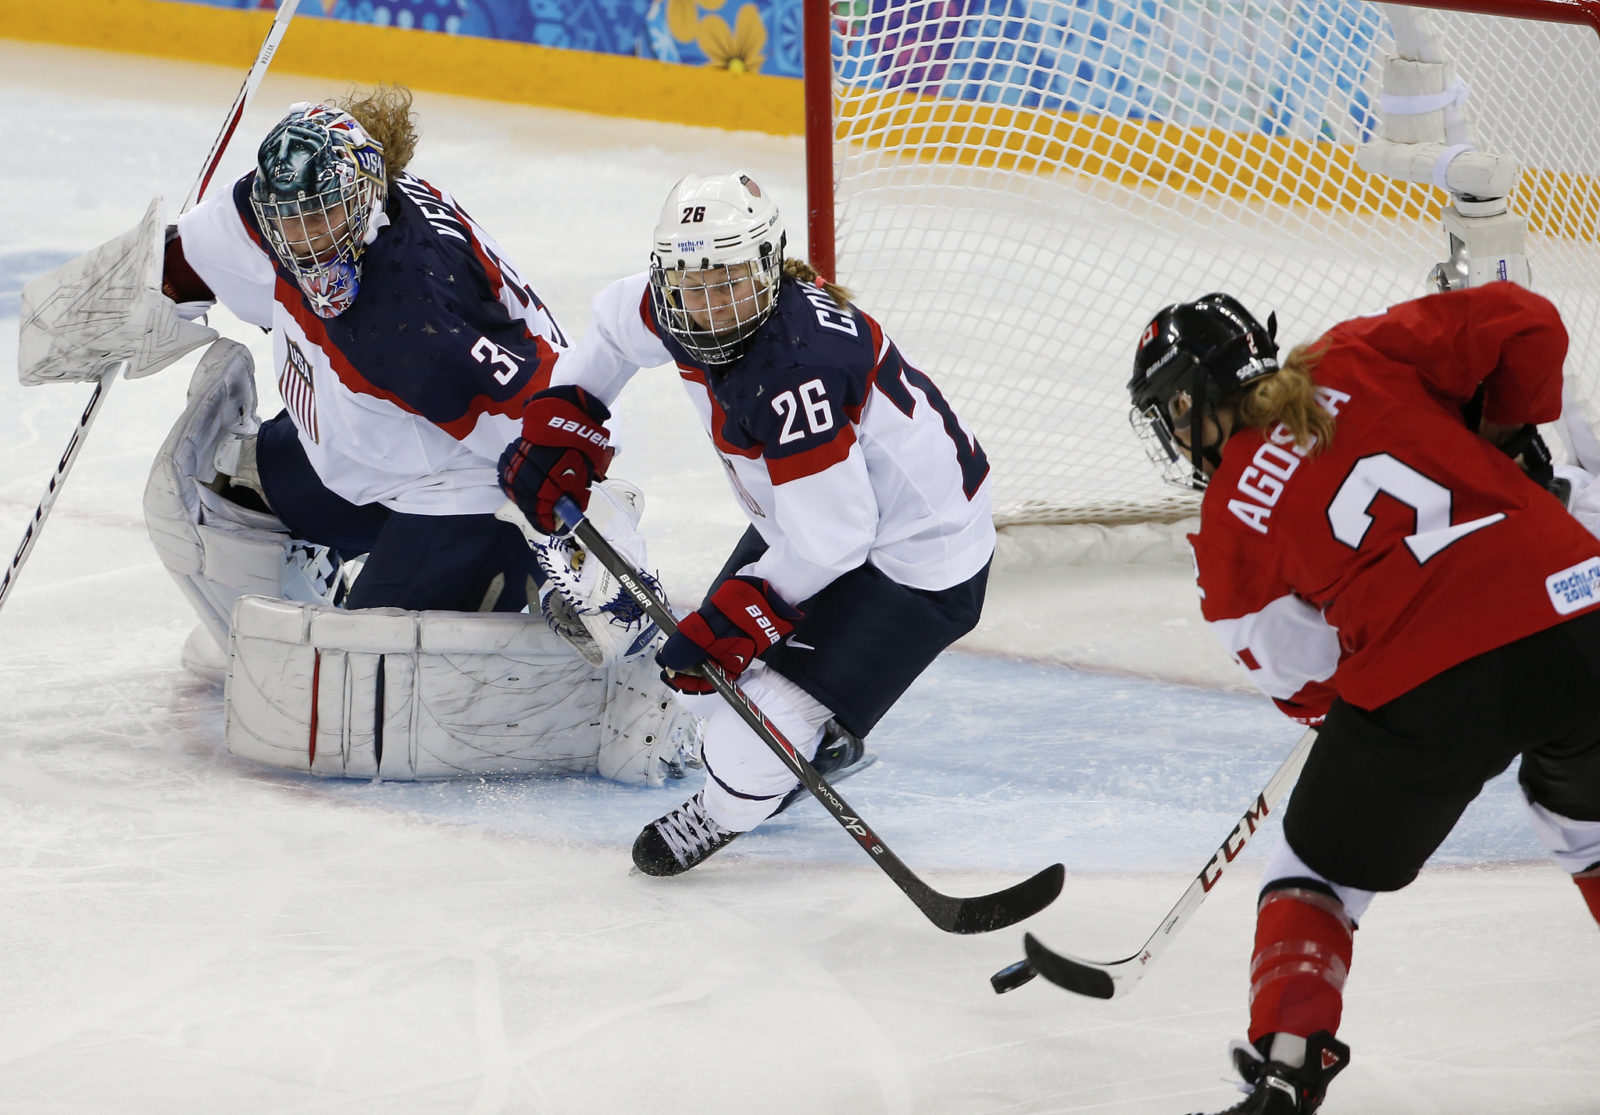 Women's hockey pants are designed specifically for the female body